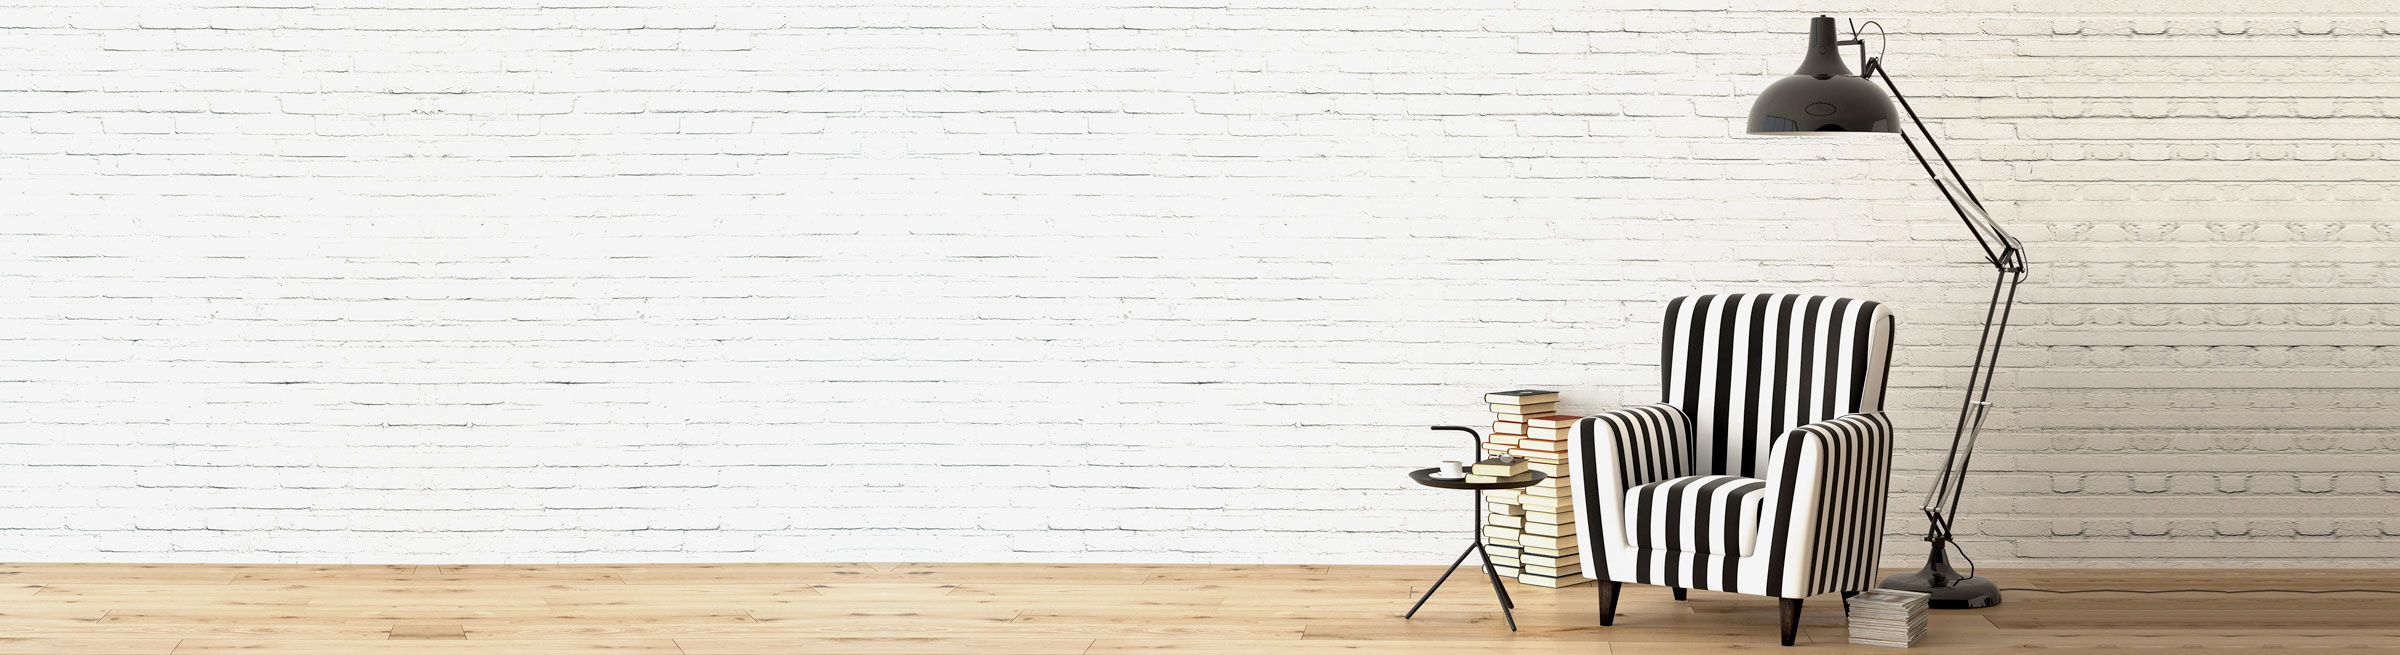 Slider image of chair in front of white brick wall